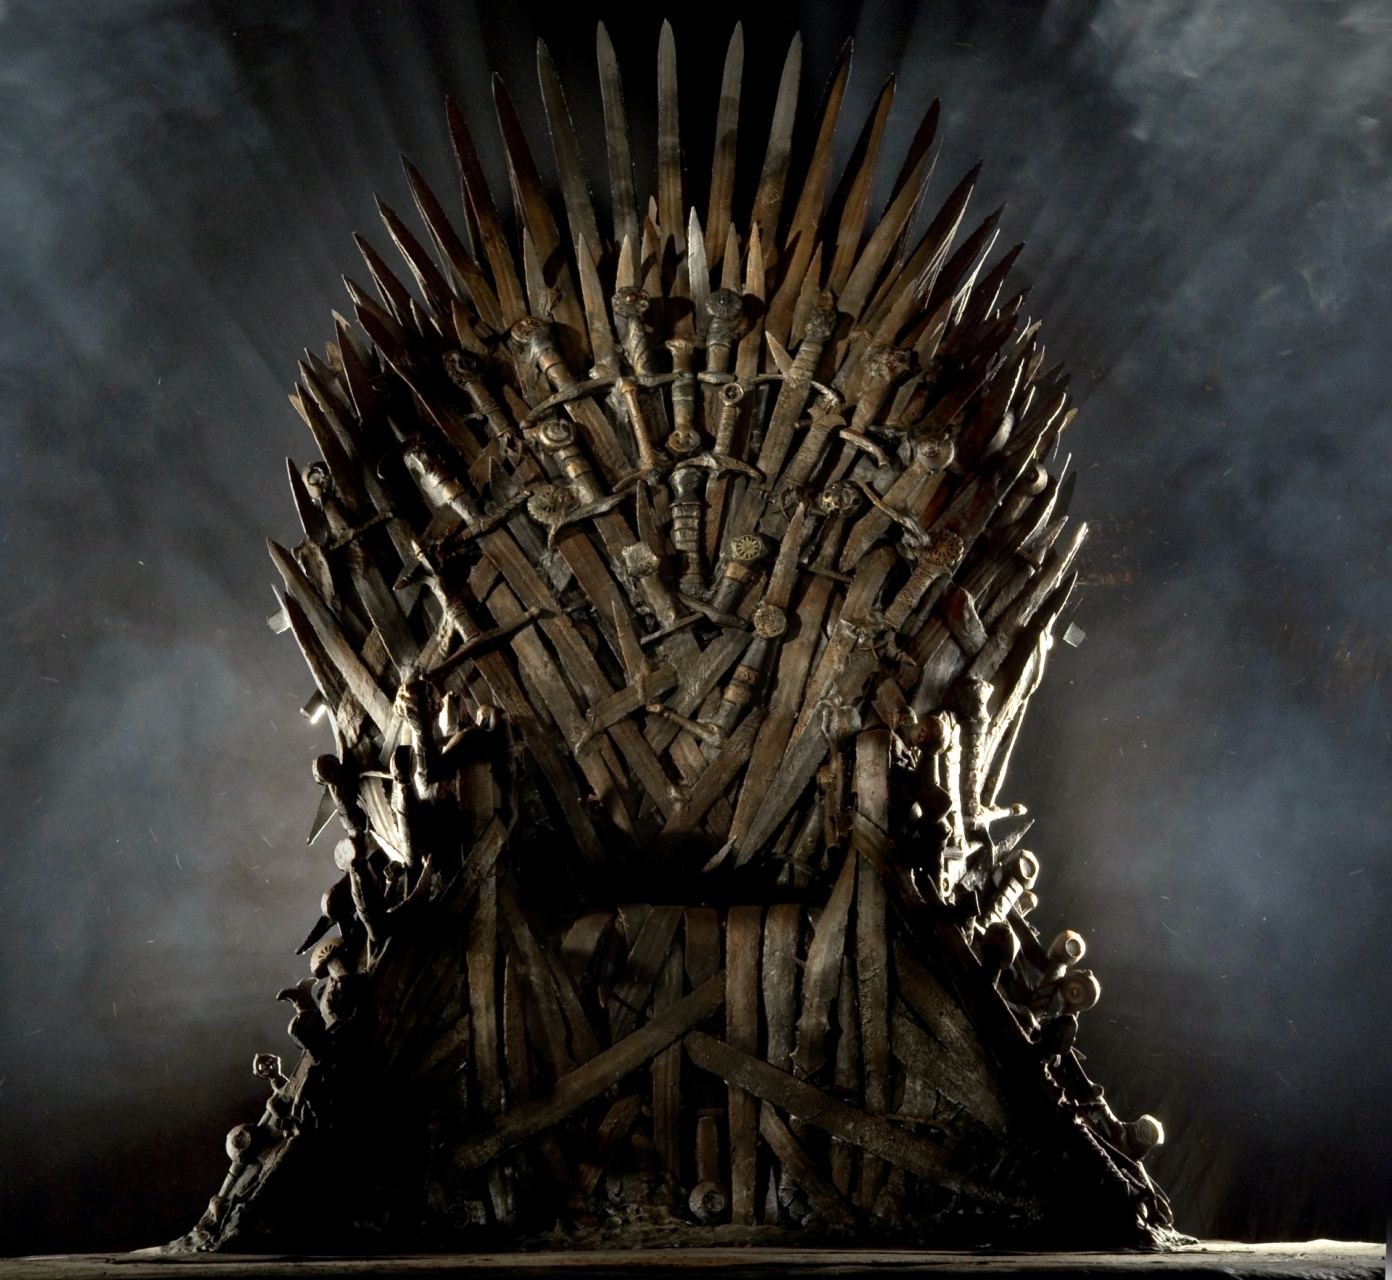 Game Of Thrones Throne Wallpaper: Game Of Thrones, S.1: Komplett Neue